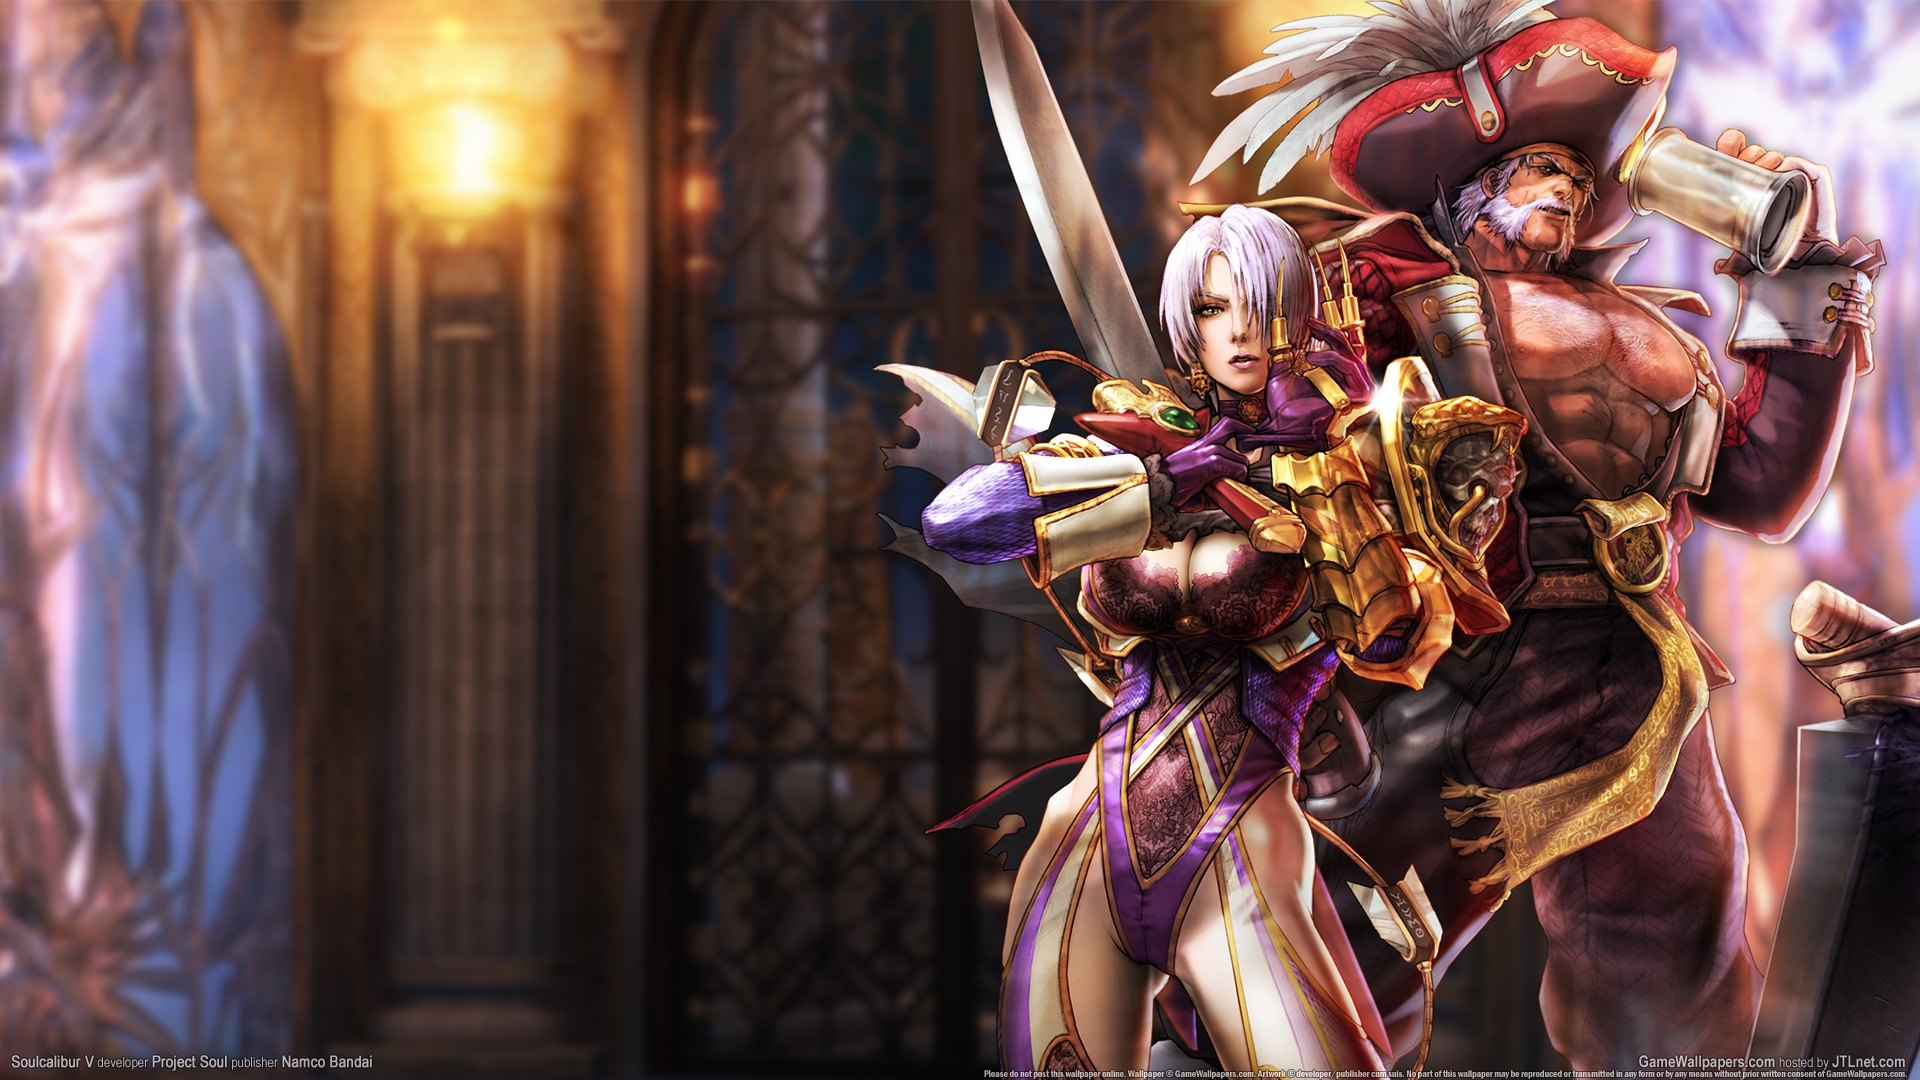 Video Game - Soulcalibur  - Soul Calibur - Game - Dark - Soul Calibur V - Soldier Wallpaper